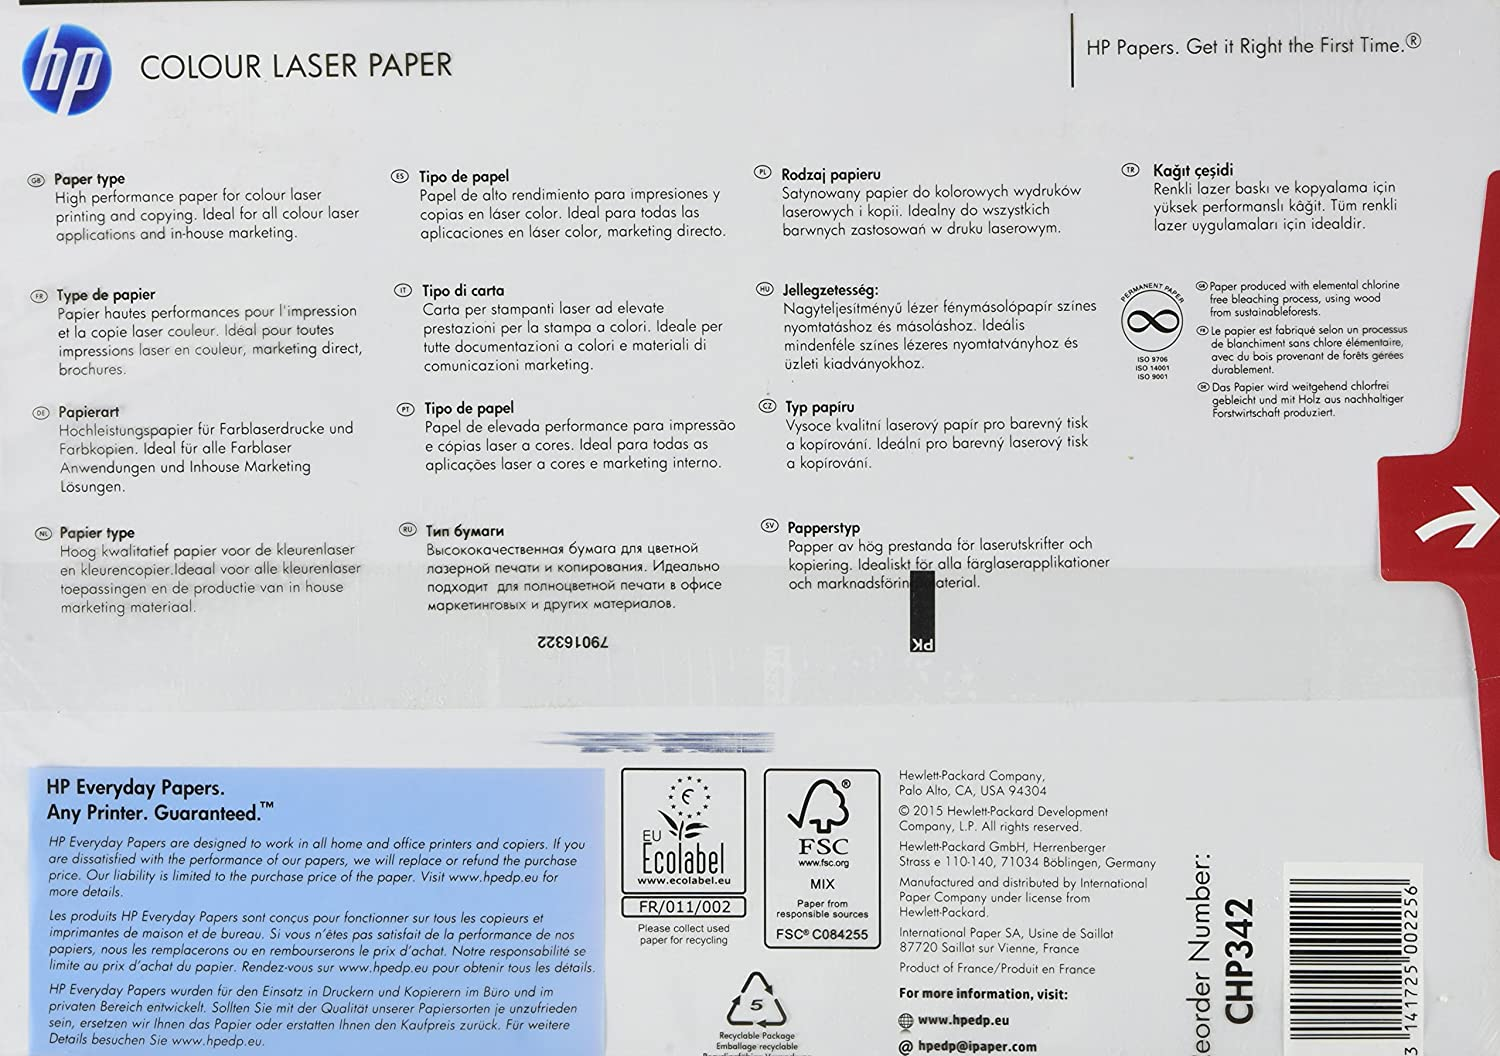 HP Papers CHP342 120GSM A4 Color Laser Paper, 500 sheets